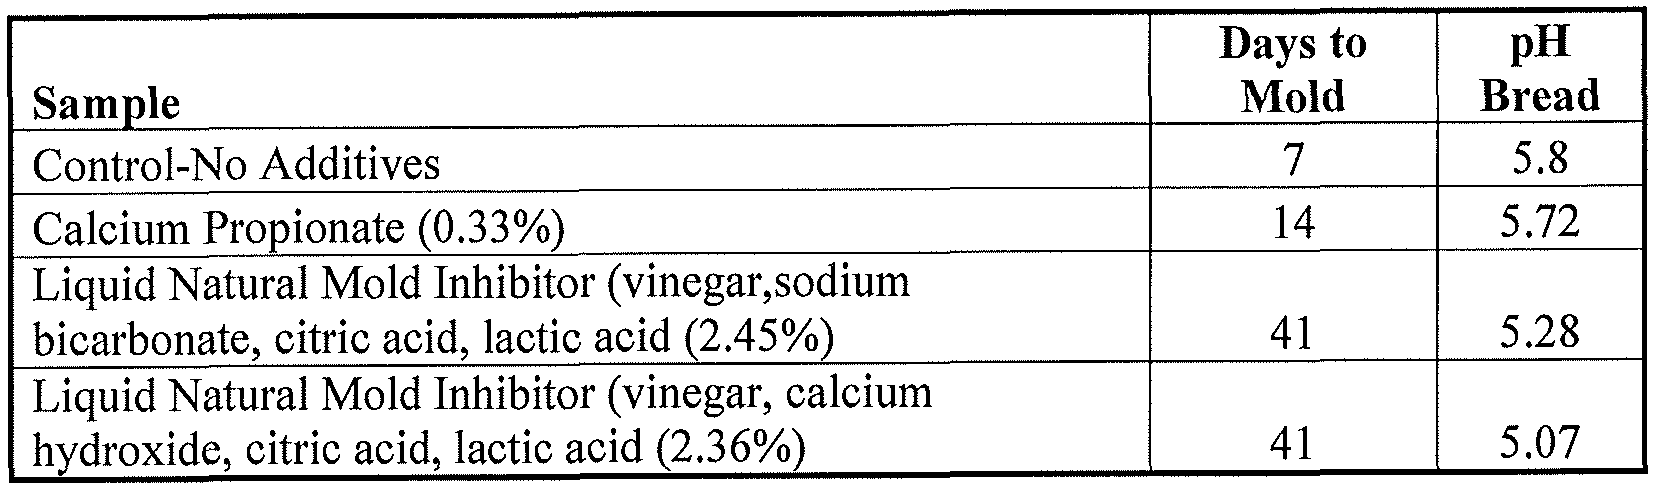 WO2013025606A2 - Natural mold inhibitor and methods of using same